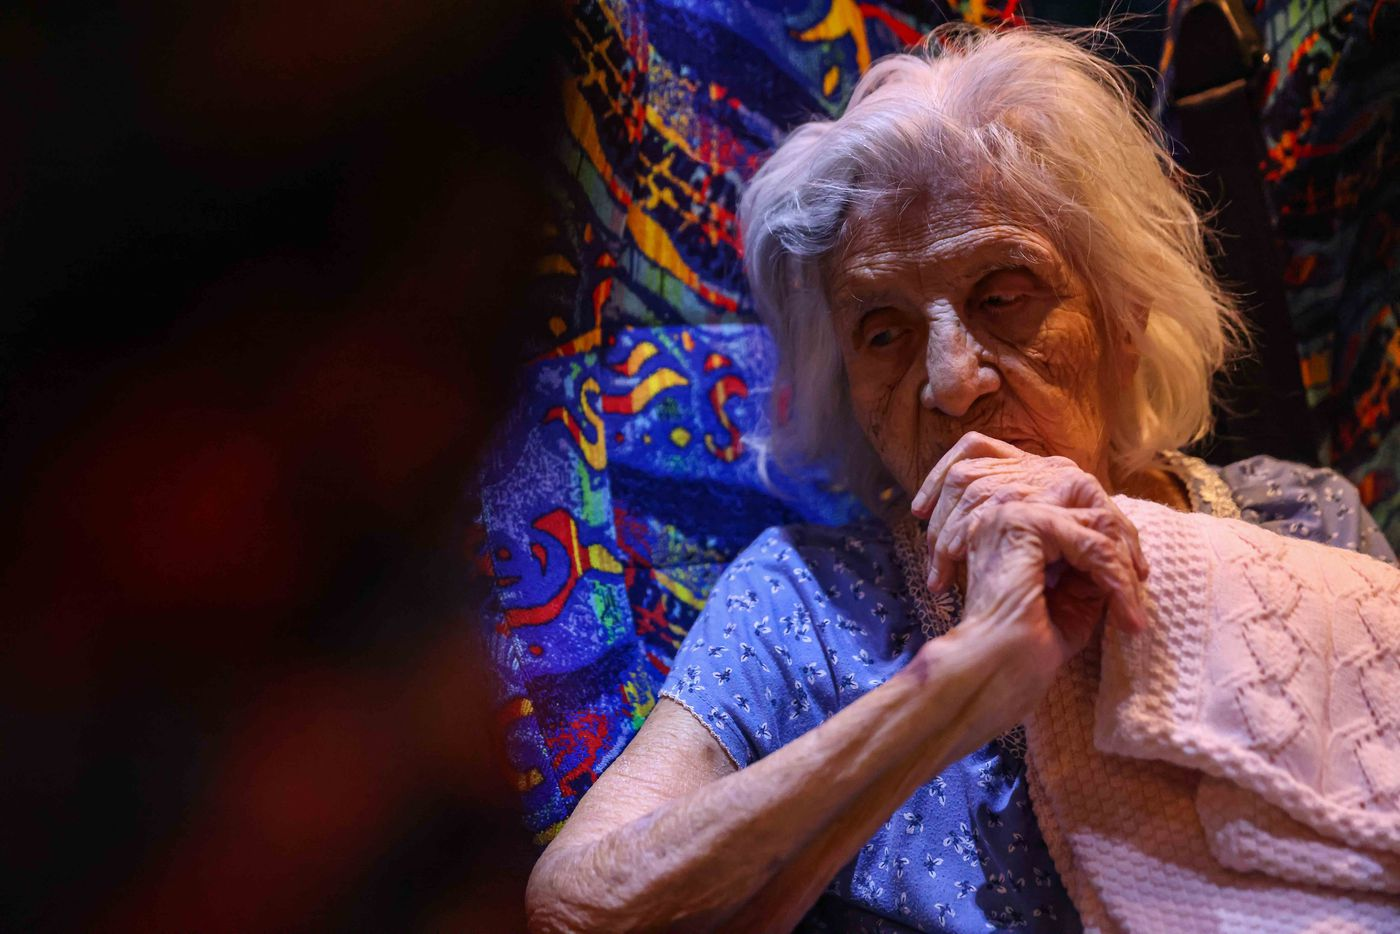 Maria Barajas, who is 100 years old and has dementia, prepares to spend the night on the bus that serves as a warming center at Pleasant Oaks Recreation Center on Wednesday, February 18, 2021 in Dallas.